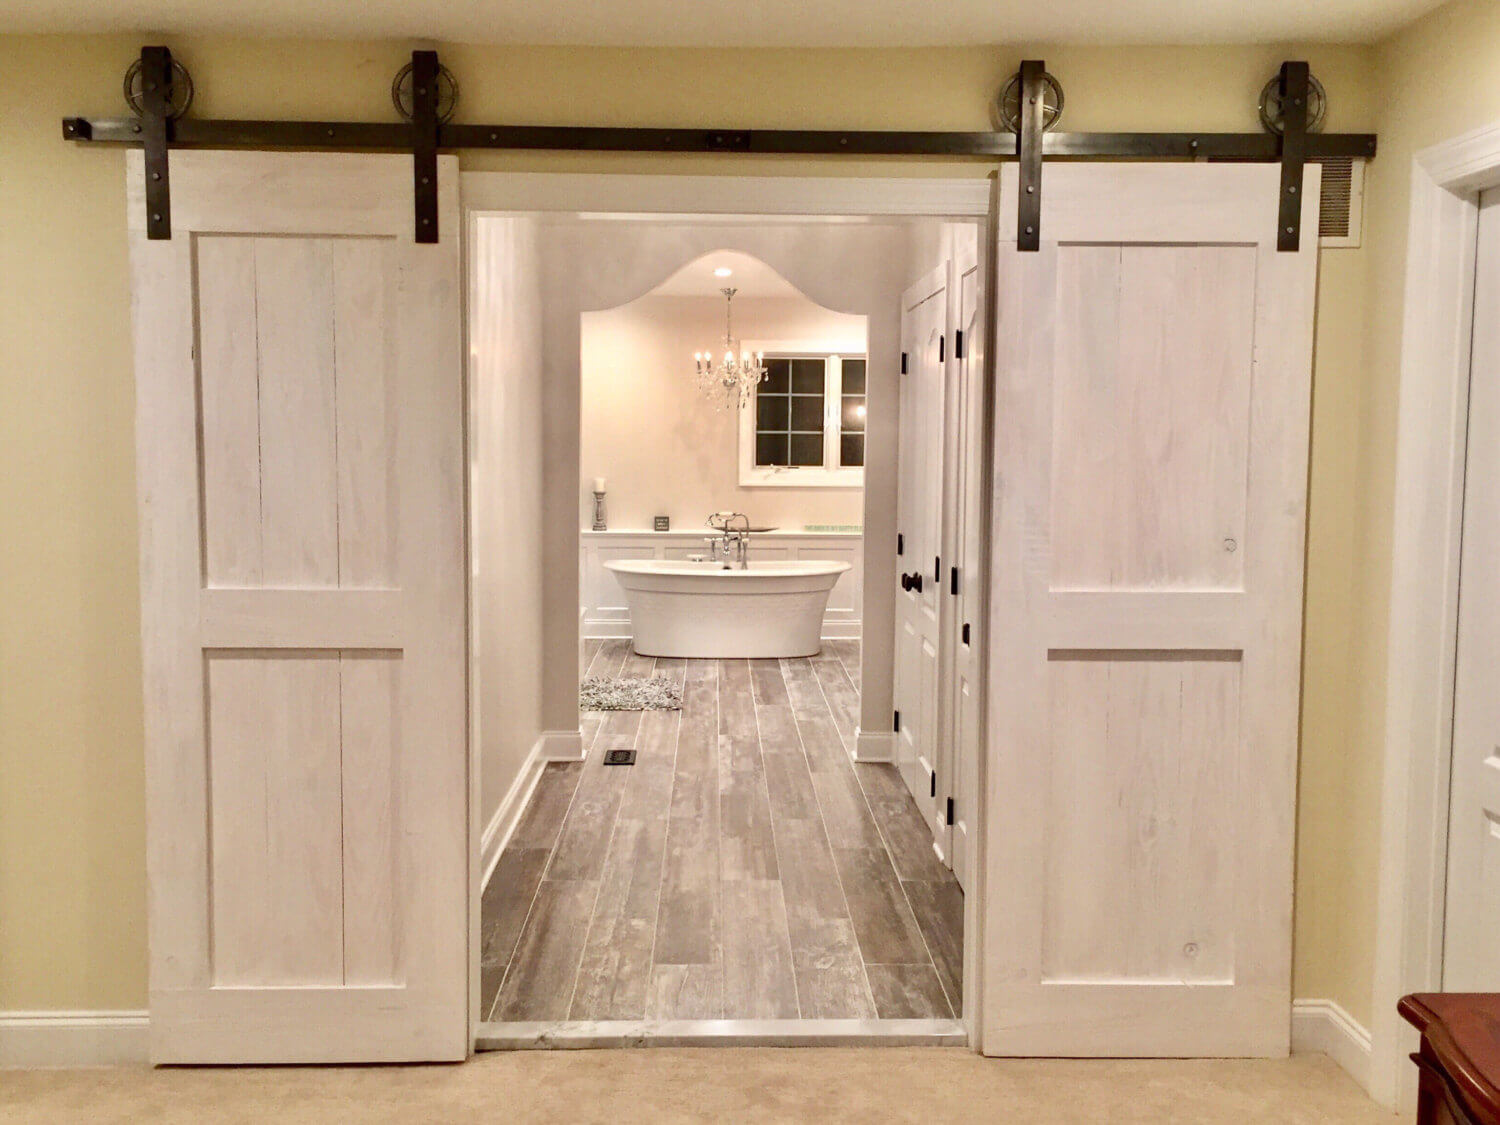 Homes For Sale With A Barn Door In Fairhope Daphne And Spanish